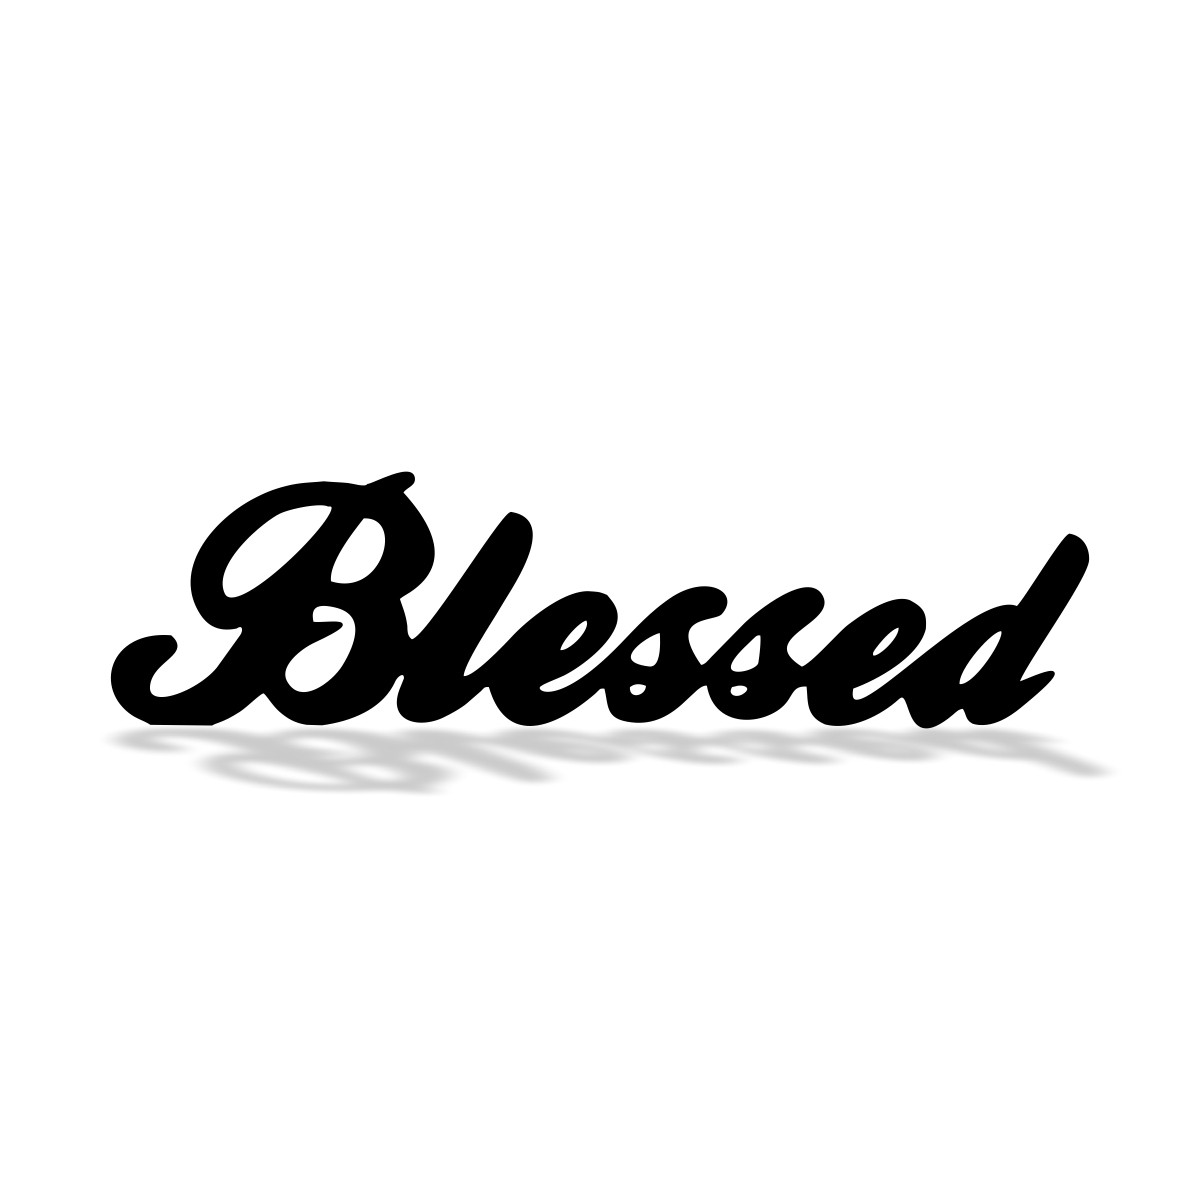 PLACA DE MESA DECORATIVA - BLESSED - 30x10cm